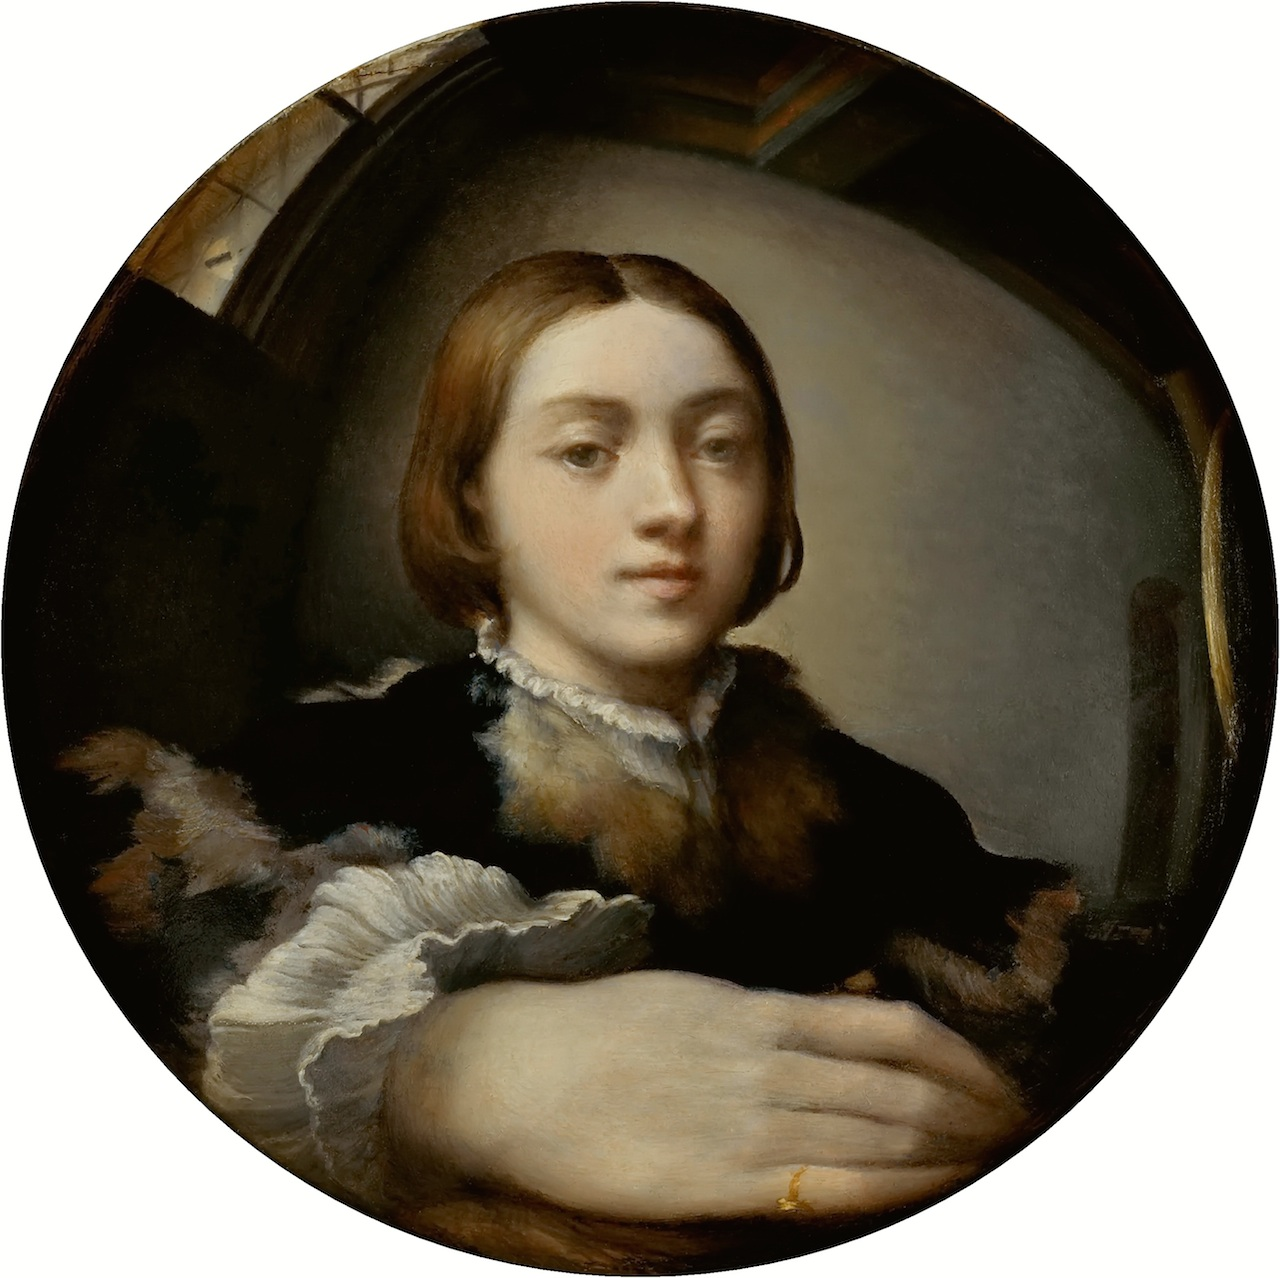 Parmagiannino, Self-Portrait in a Convex Mirror, 1524,  Oil on convex wood panel, 9.6 inches in diameter (LINK TO WIKIMEDIA)